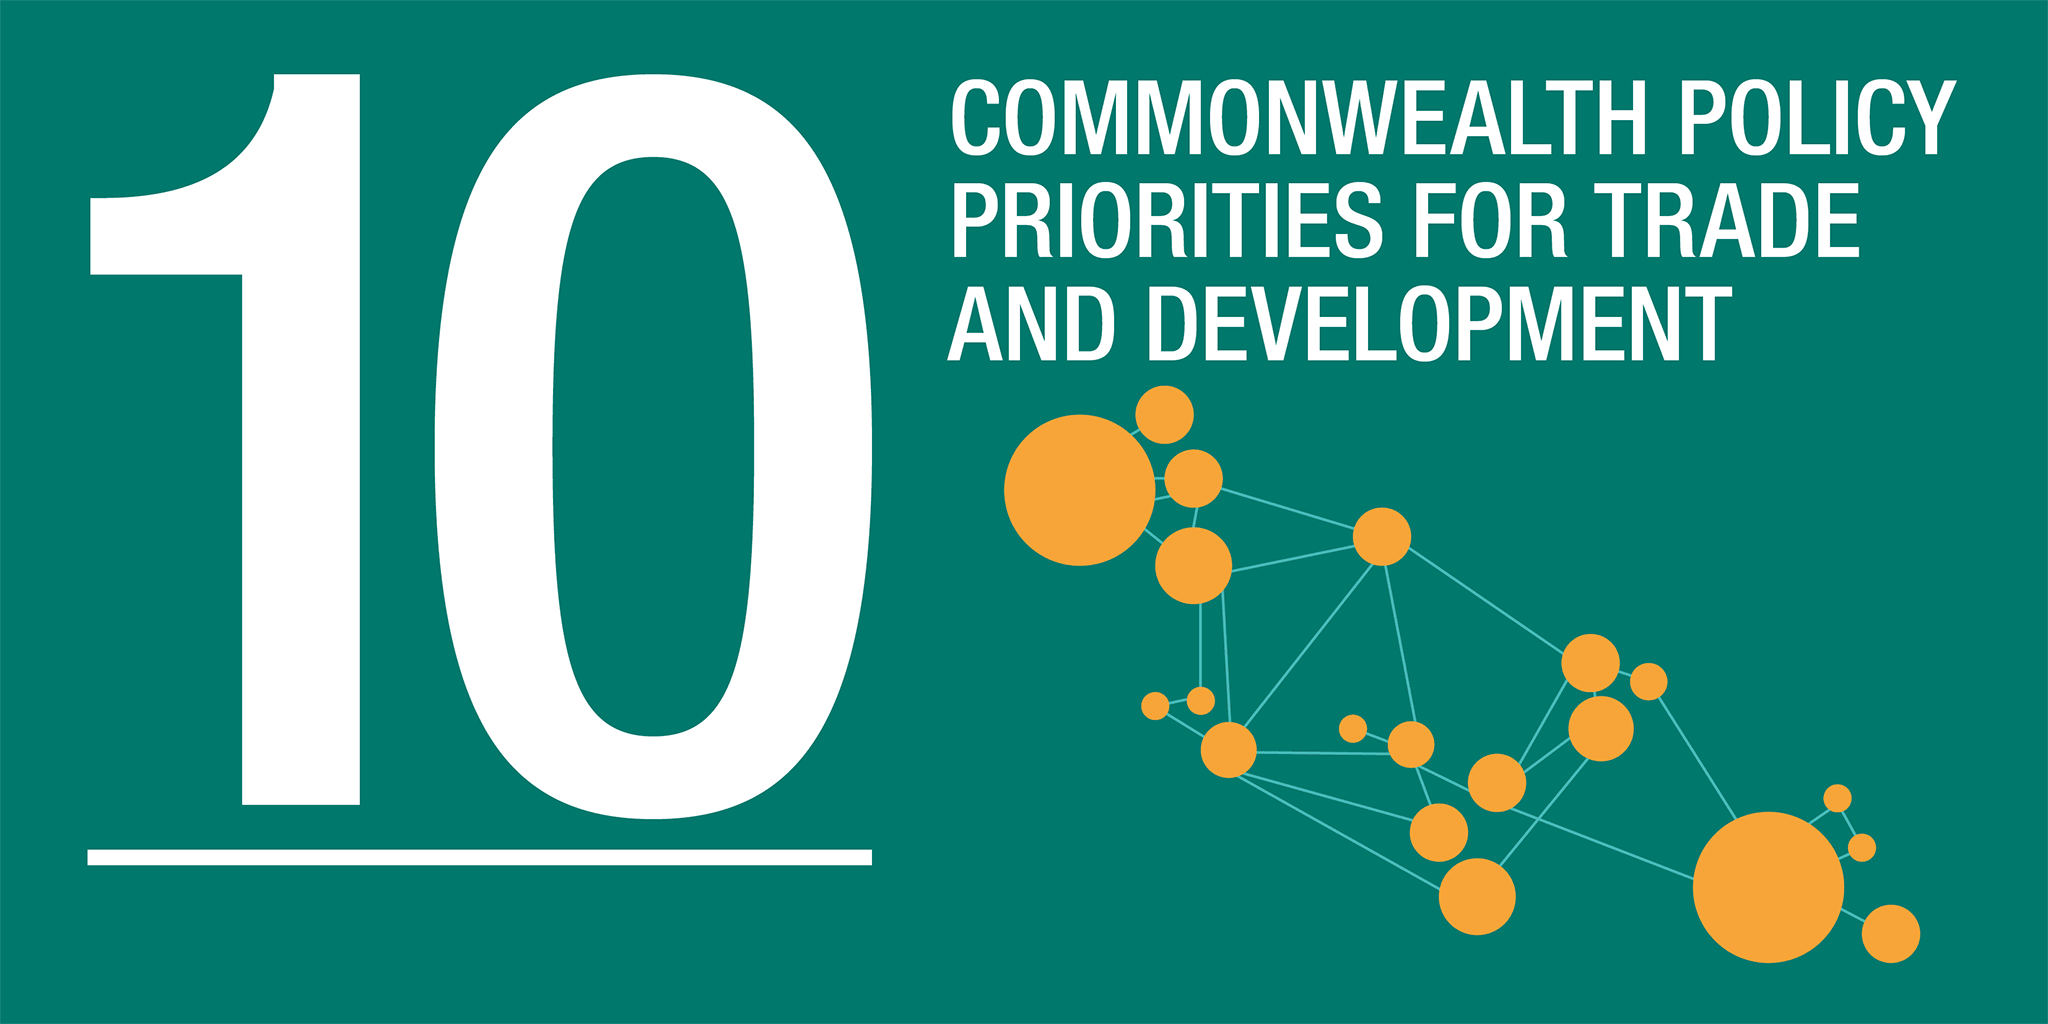 10 Commonwealth policy priorities for trade and development